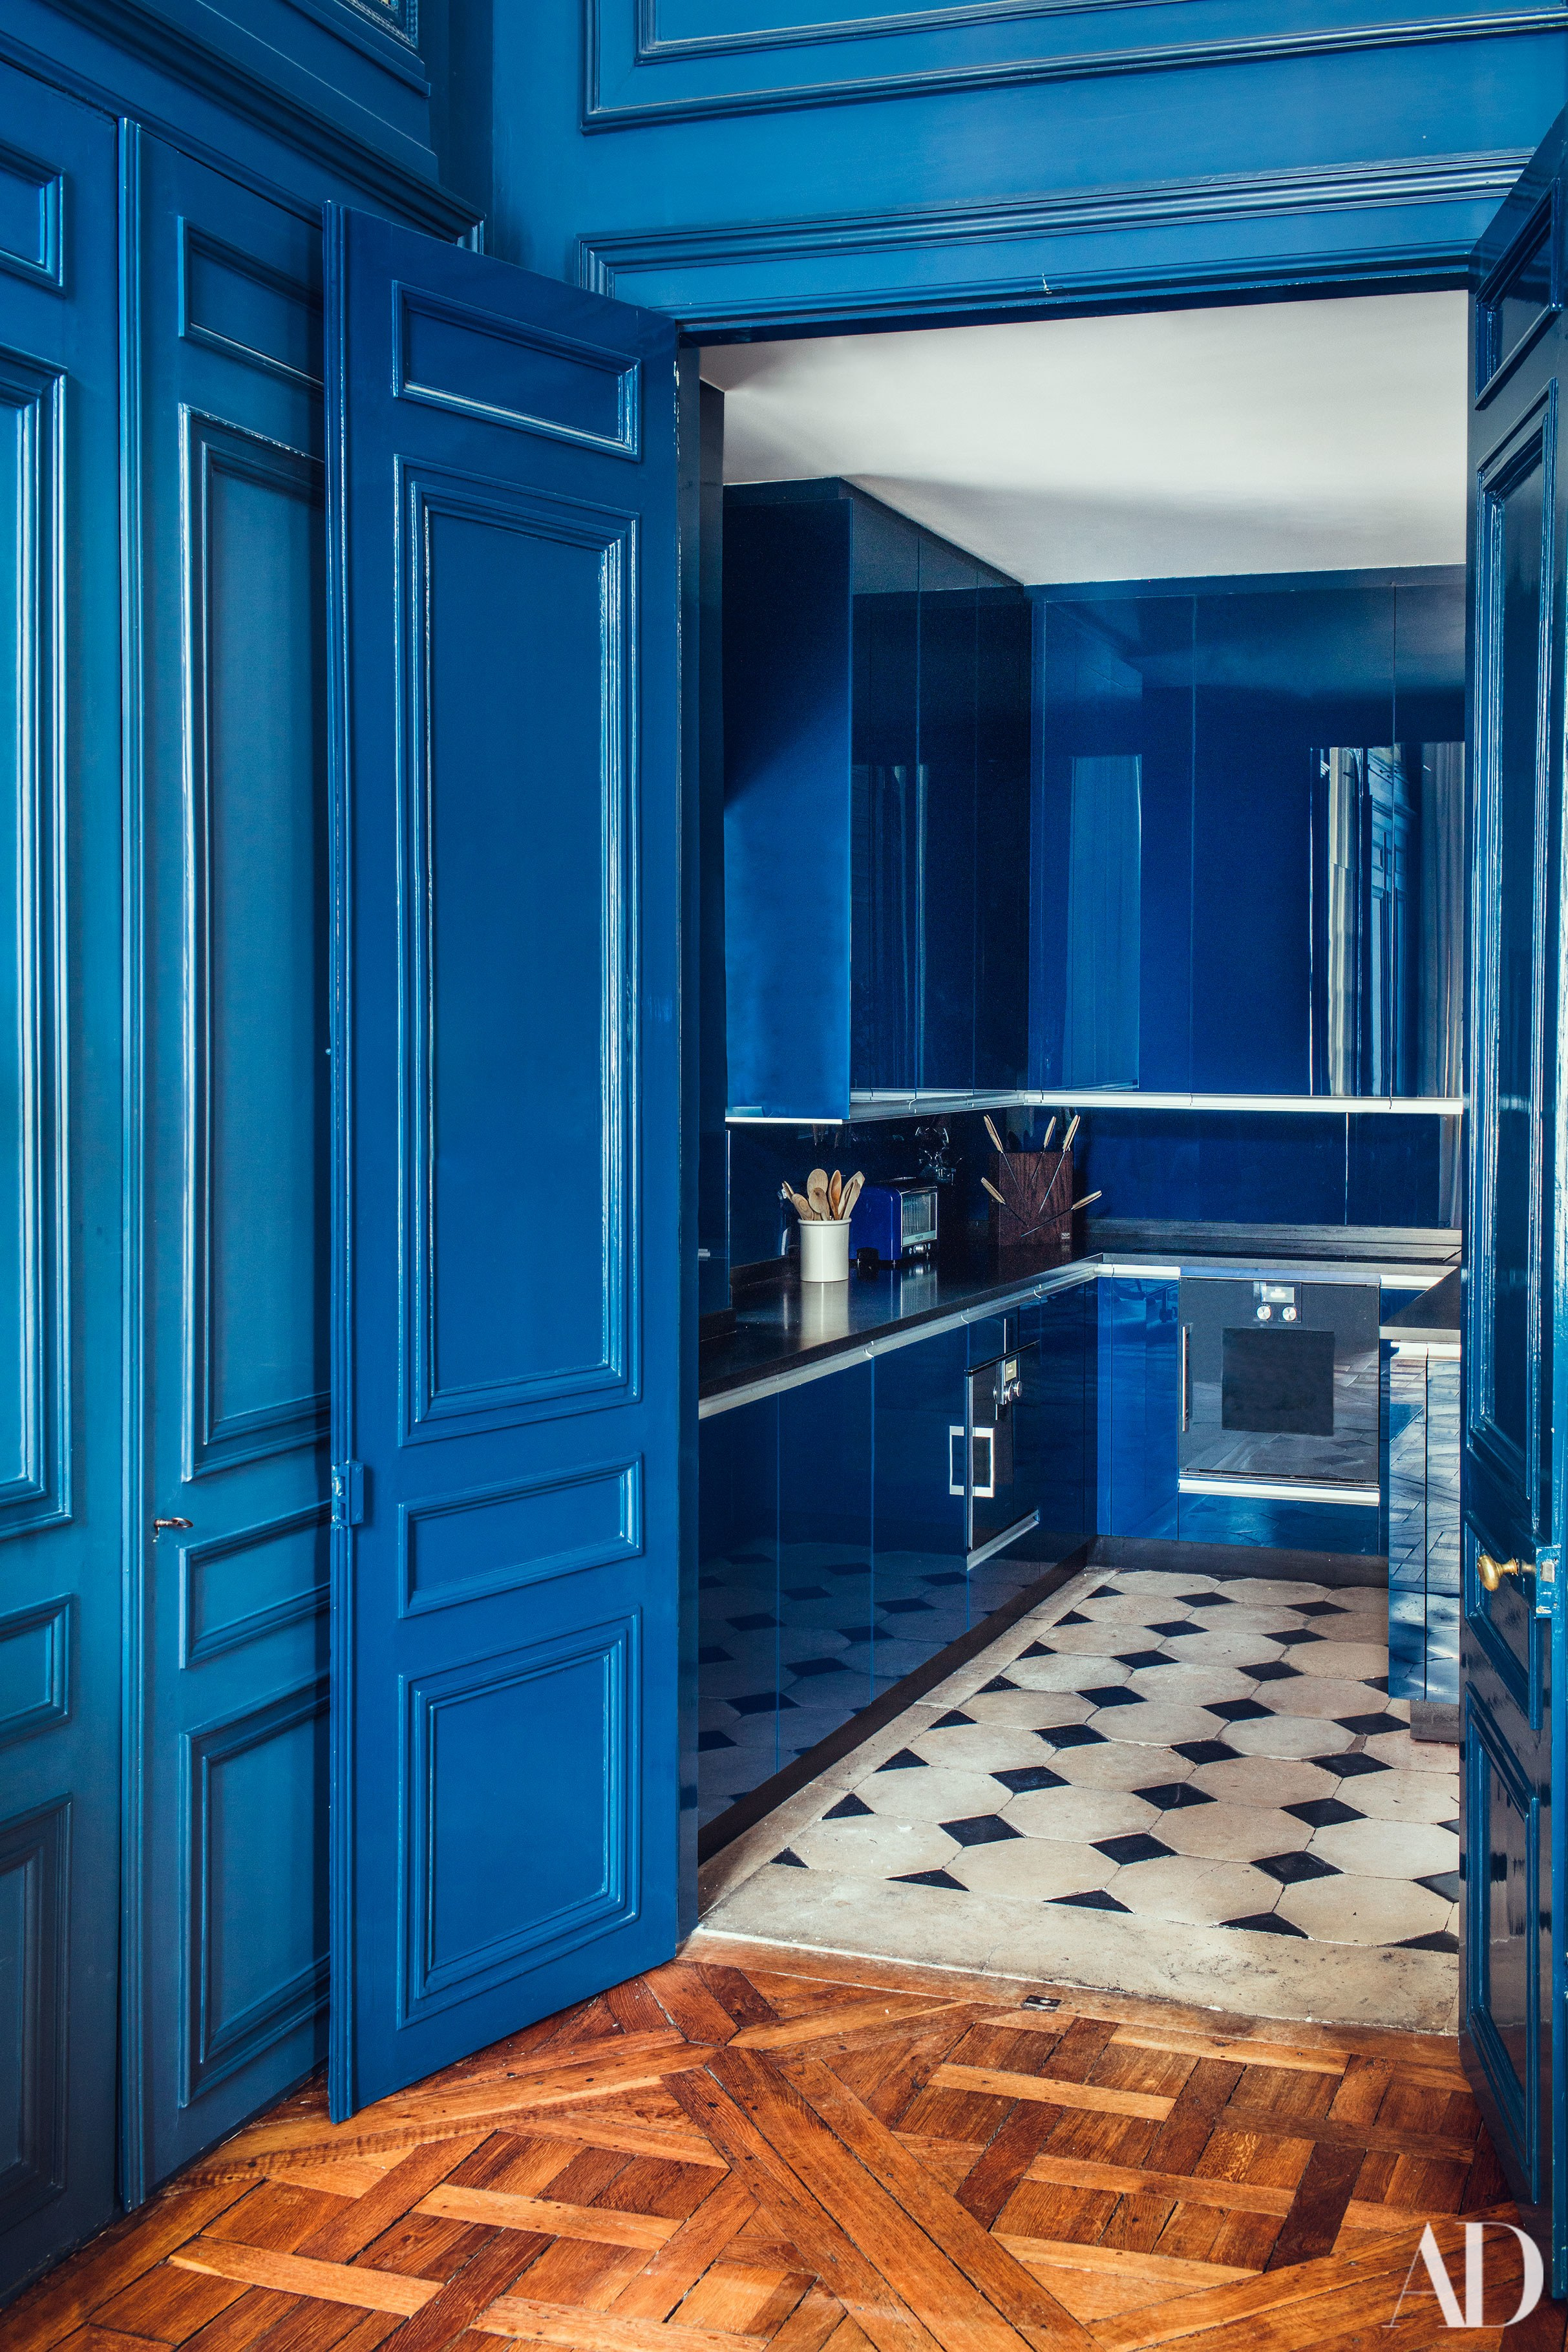 Décor Inspiration | At Home With: Pierre Sauvage, an 18th-Century Apartment in Paris